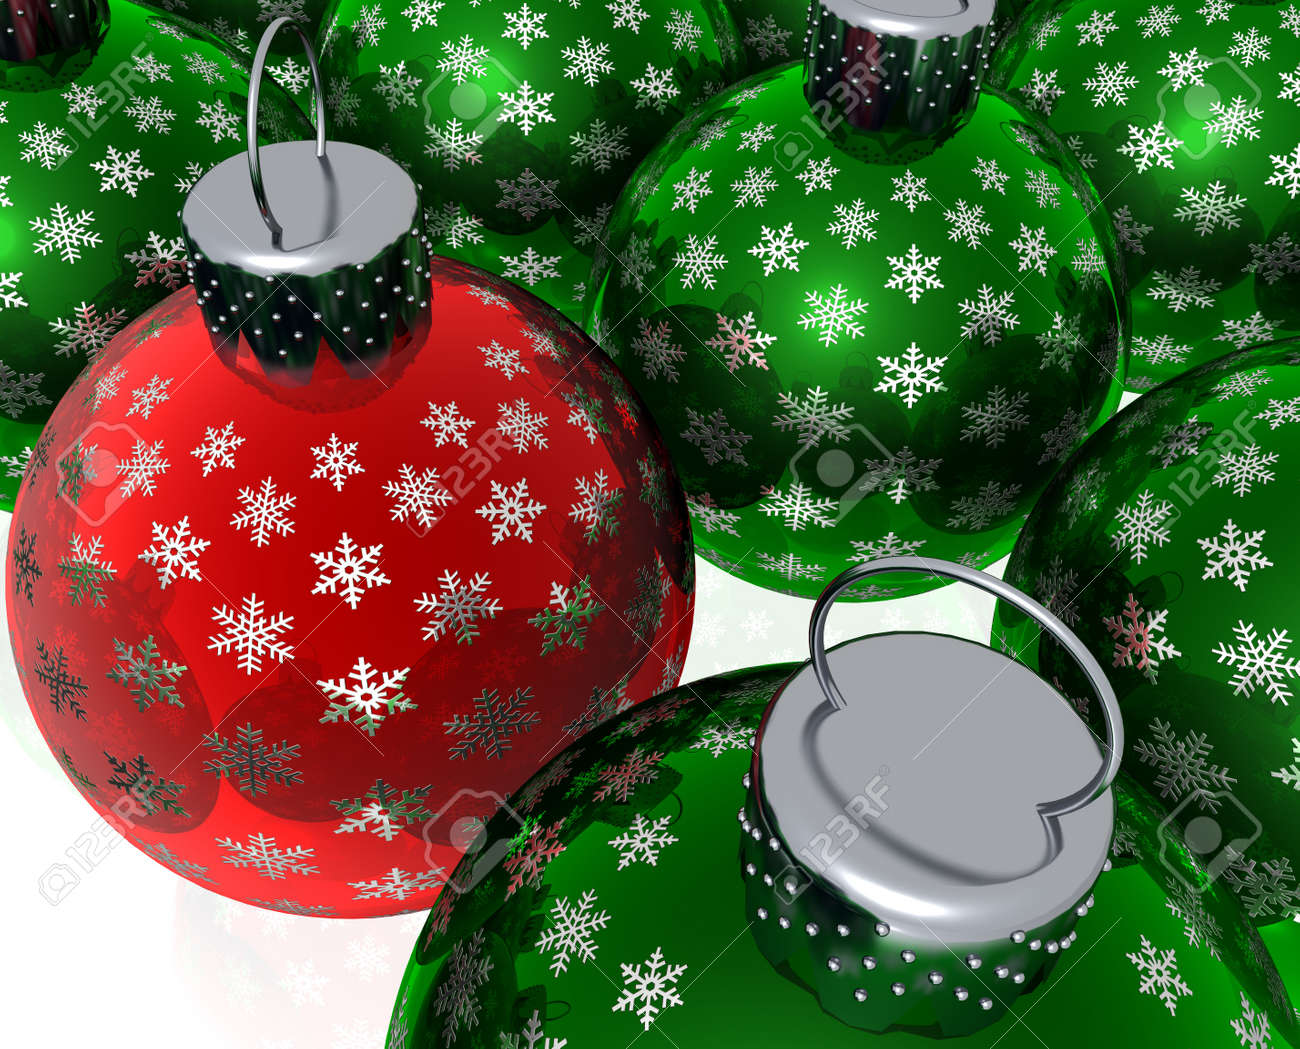 Red glass christmas ornaments - 3d Rendering Of Red And Green Glass Christmas Ornaments Stock Photo 3837465